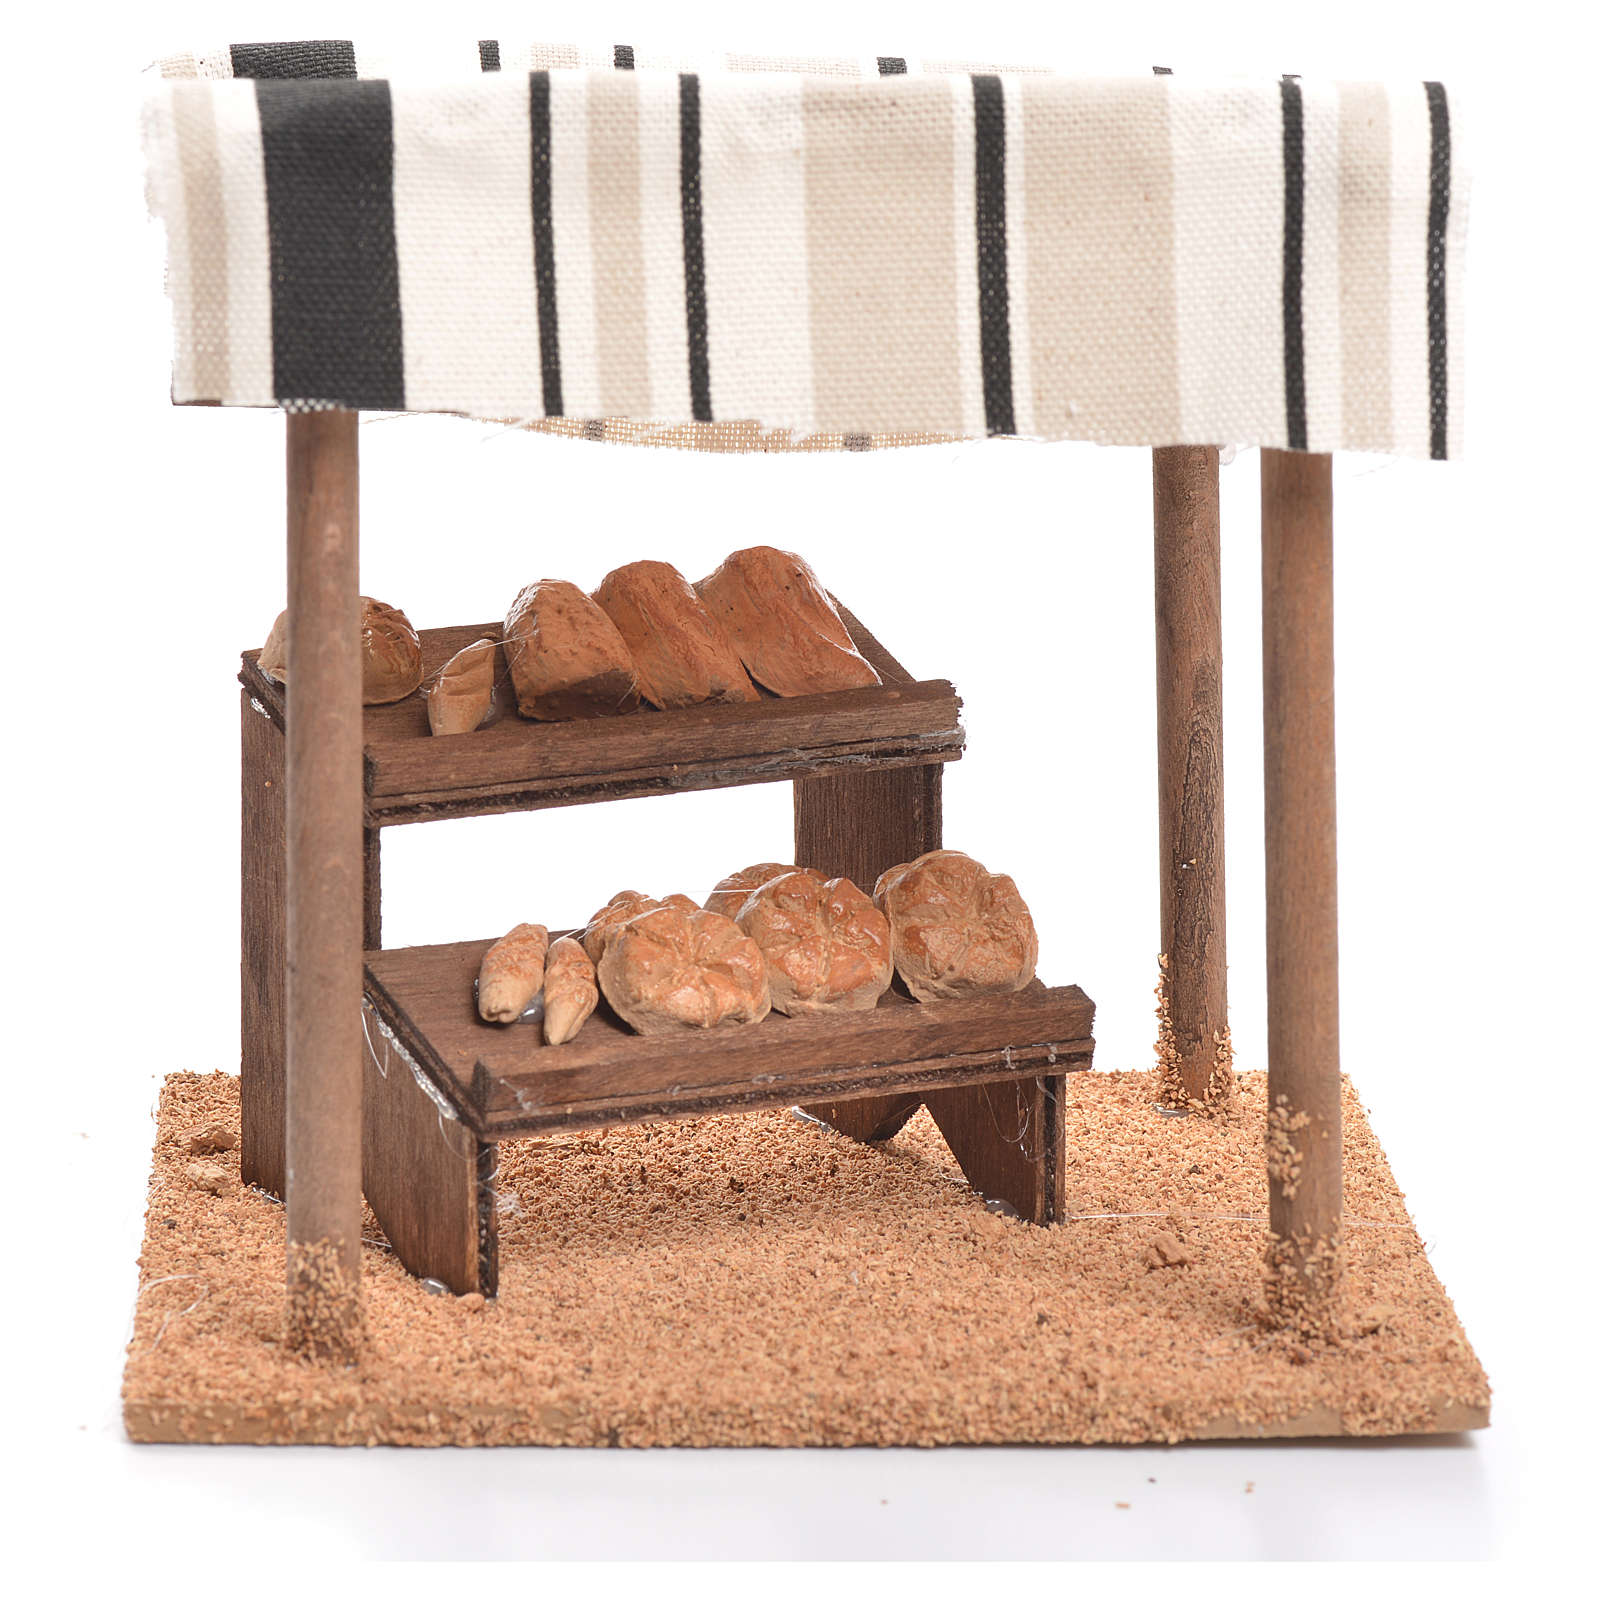 Arabian tent with bread for nativities measuring 10cm 4